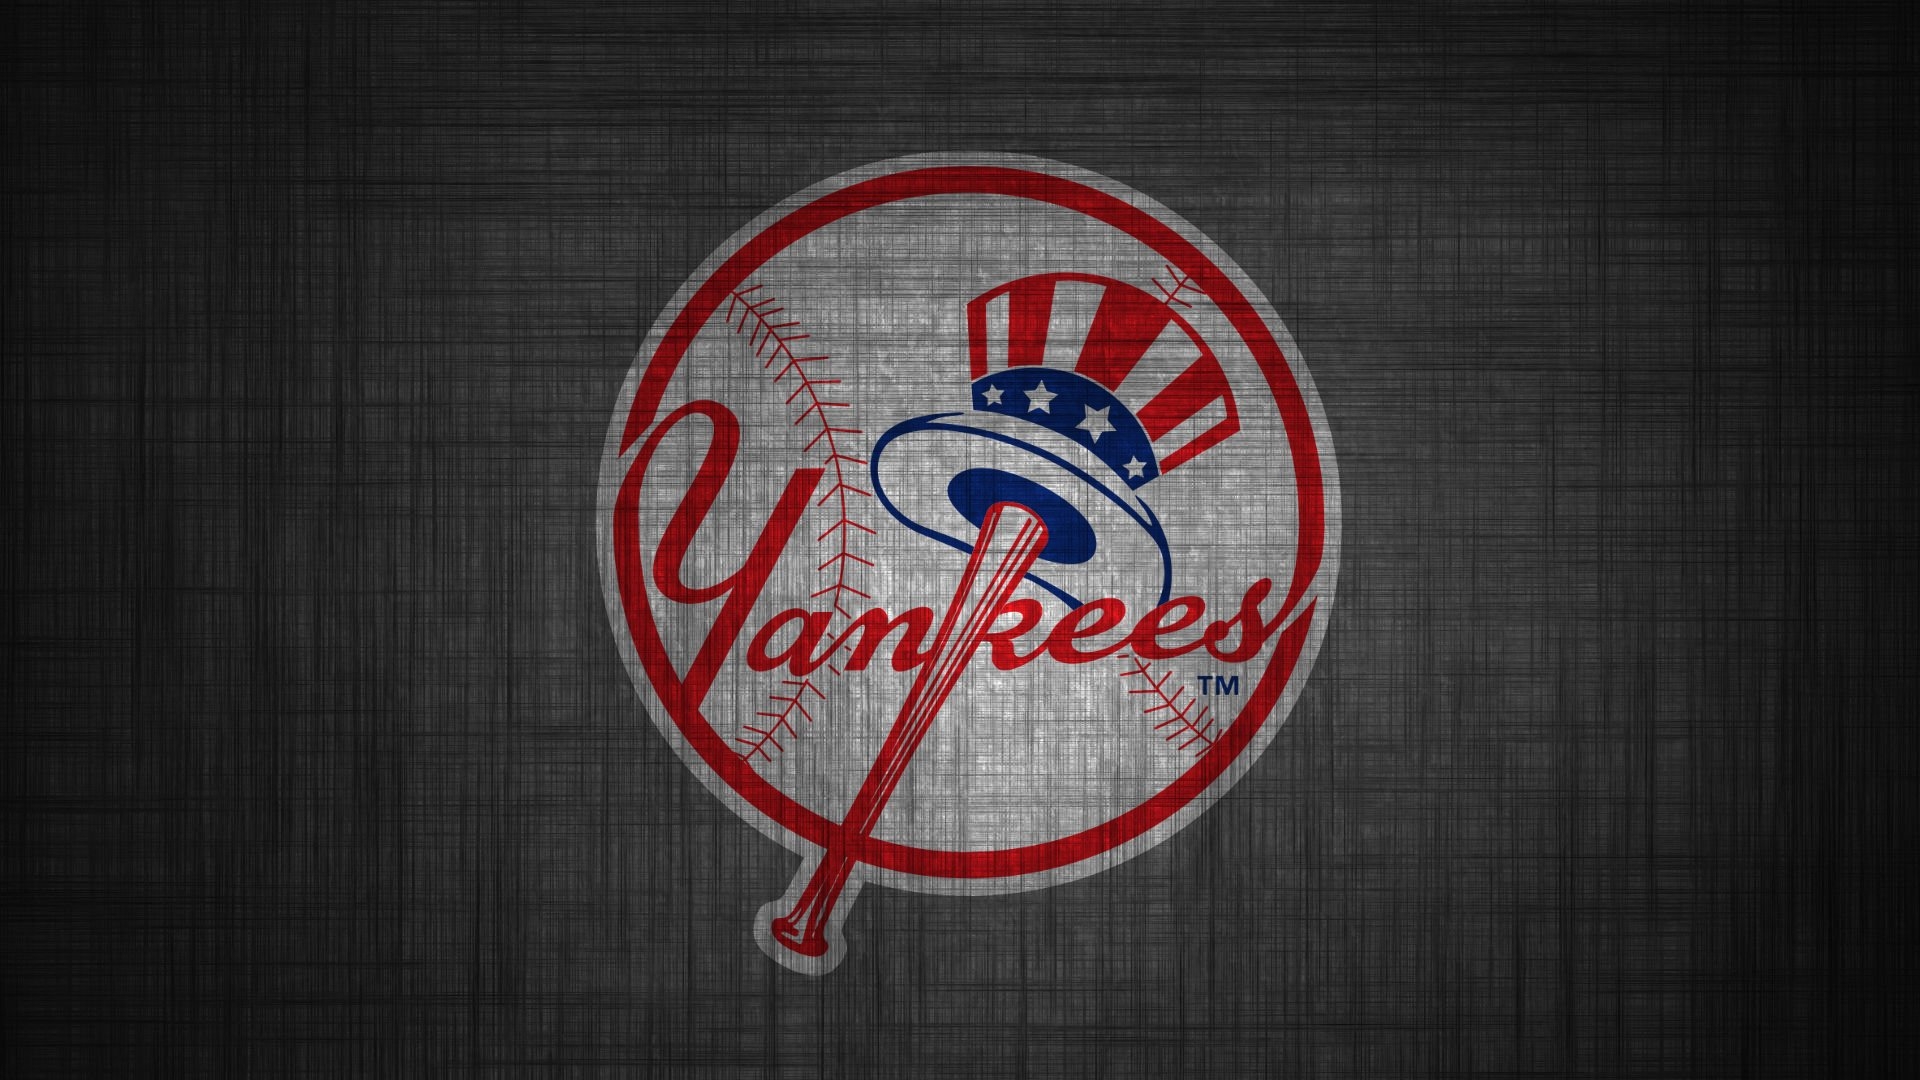 New York Yankees Top Prospects 2017 , HD Wallpaper & Backgrounds